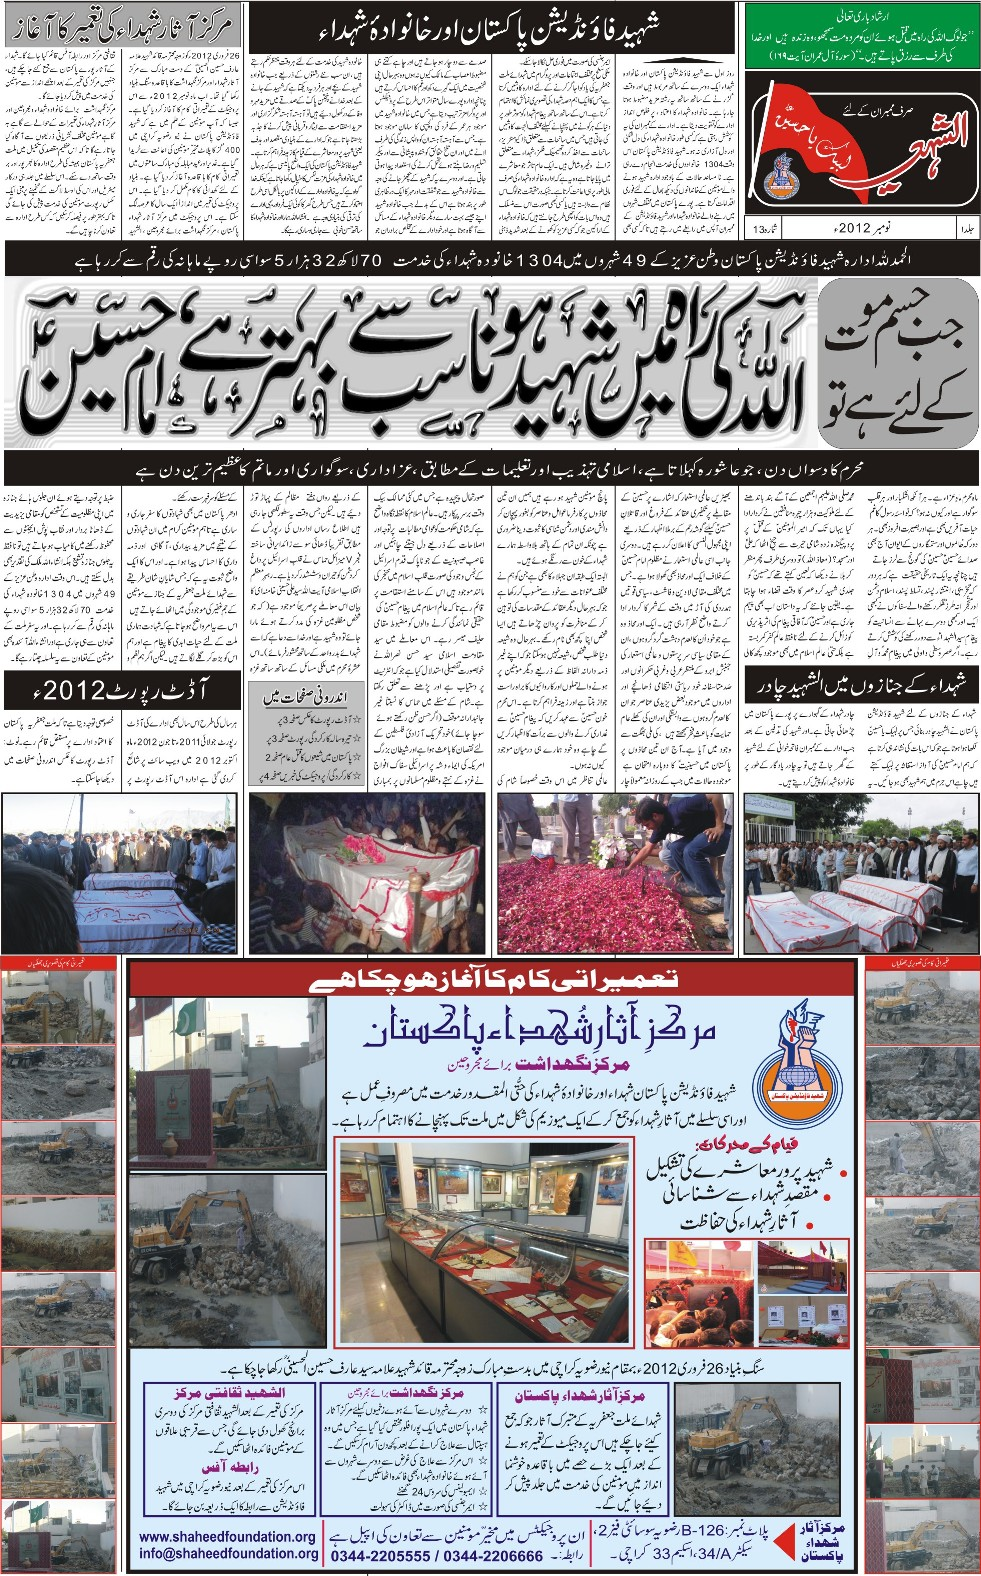 Al Shaheed News paper November 2012